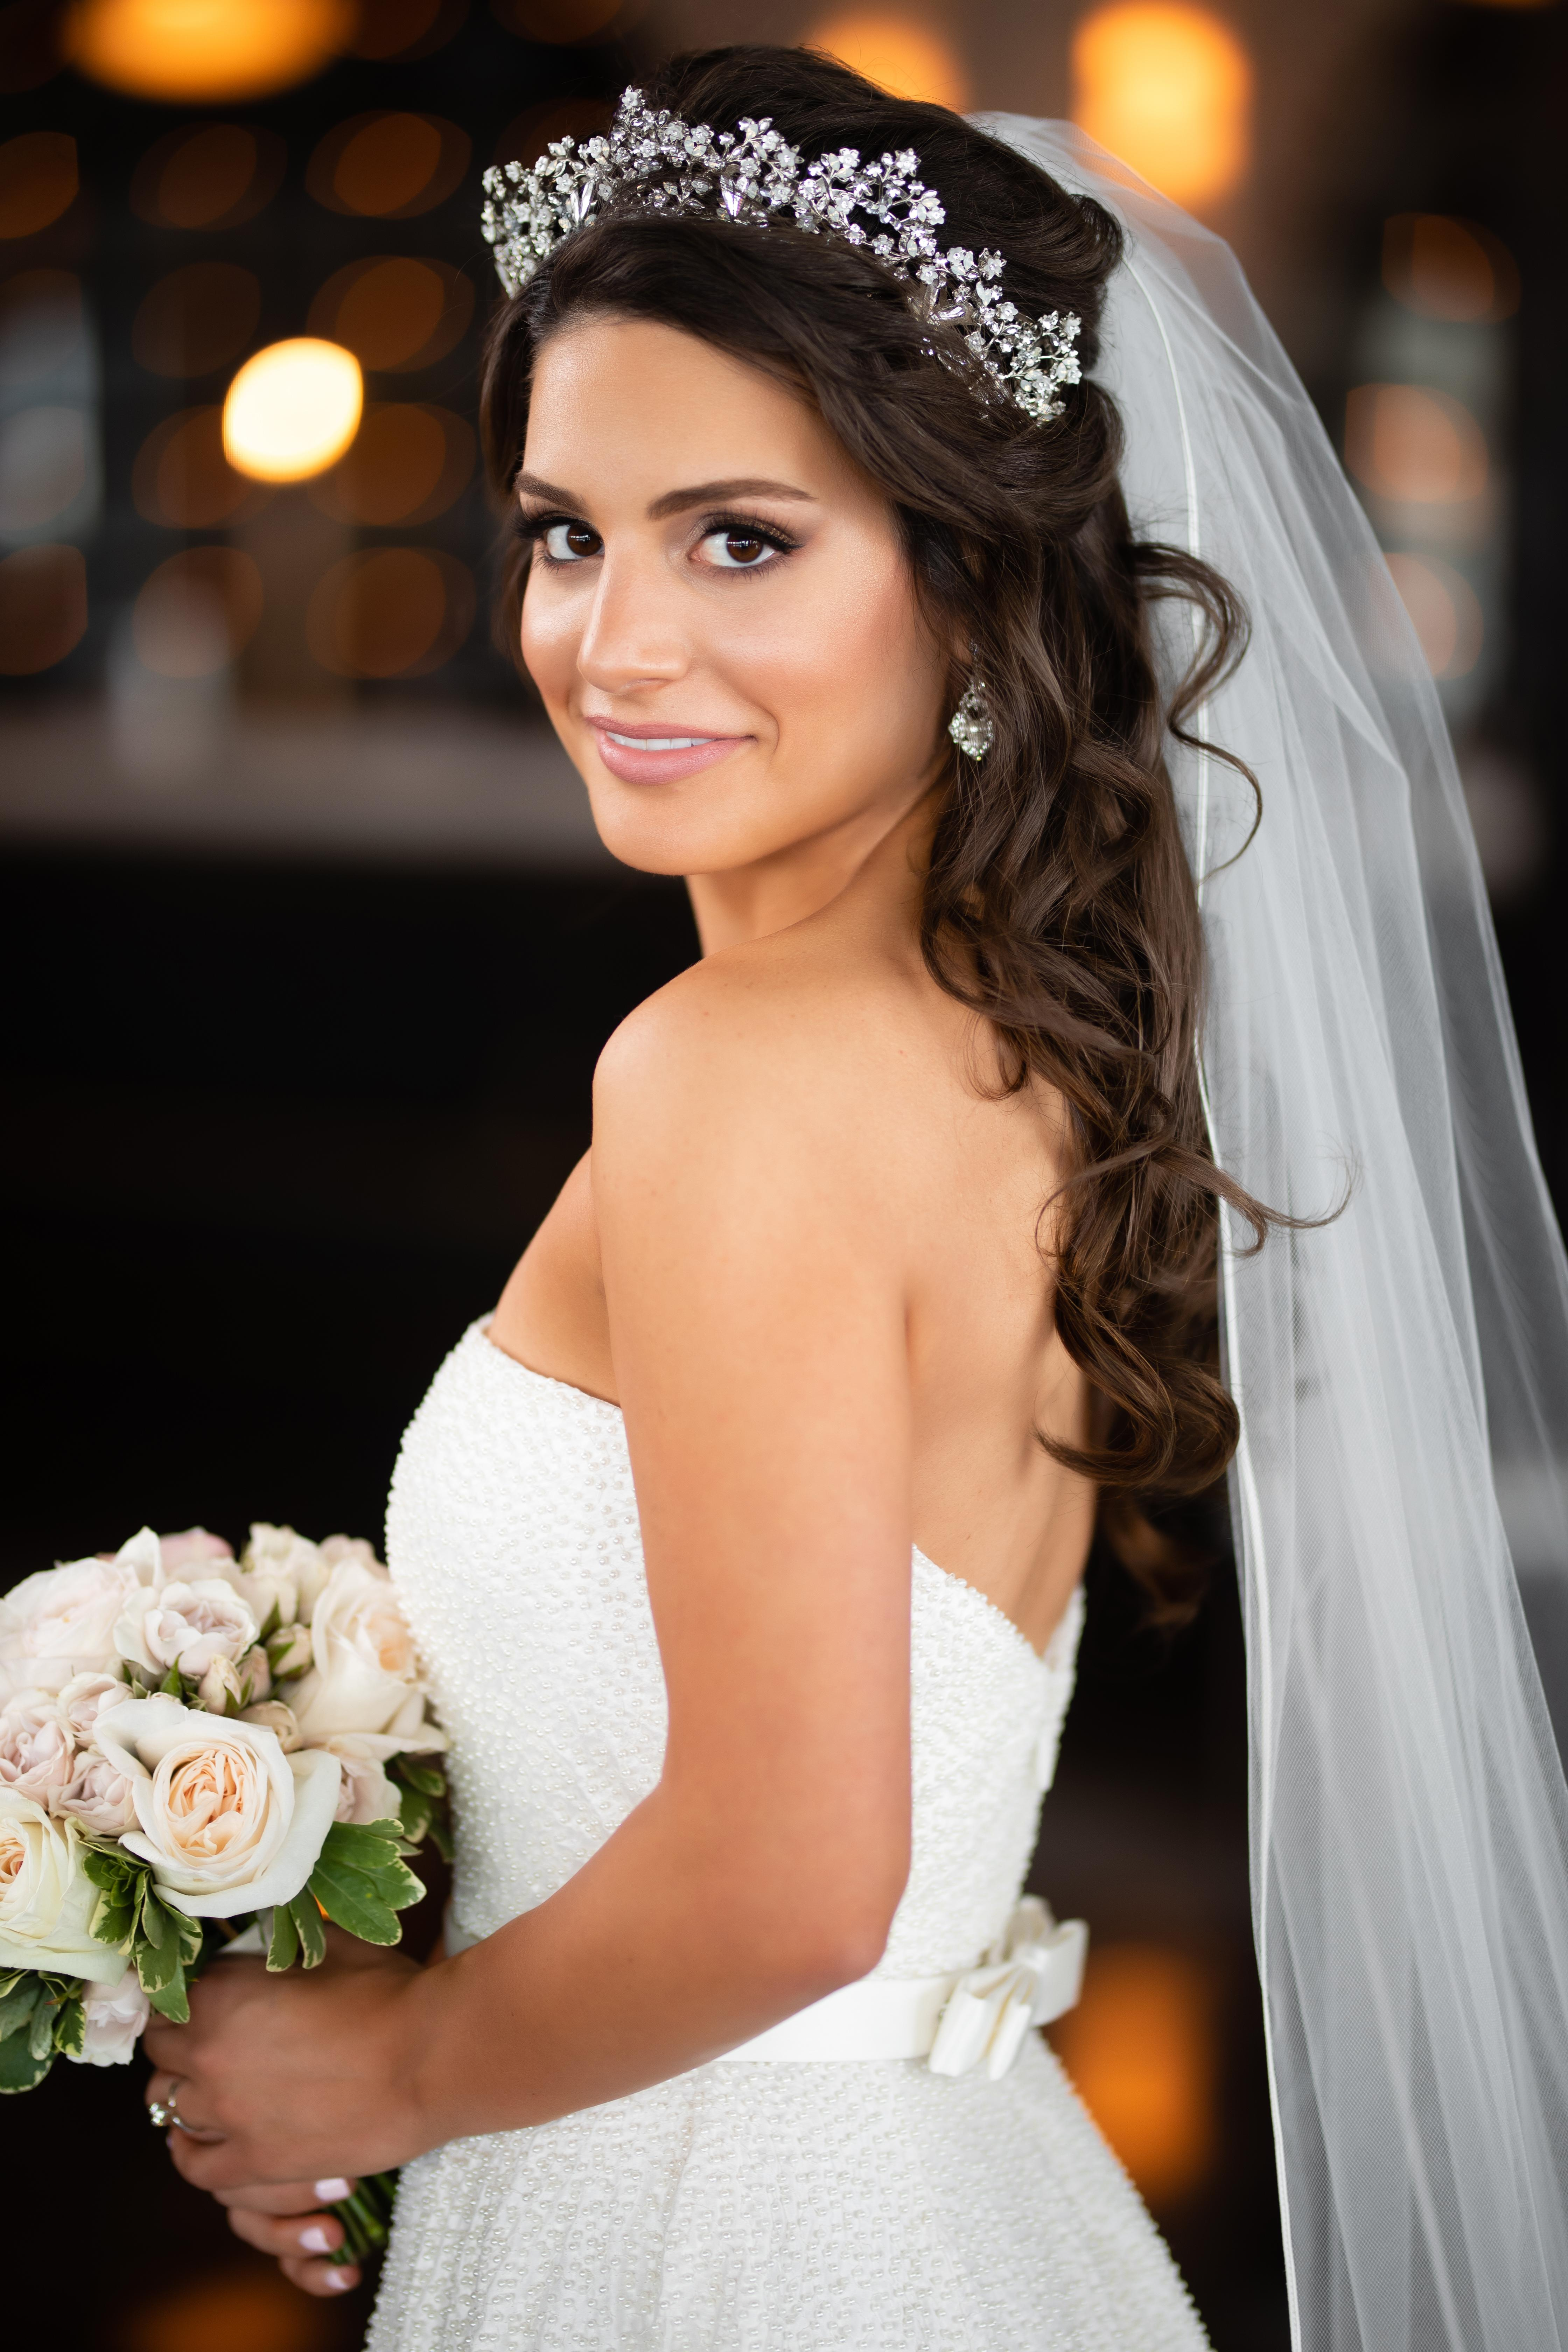 Bride with crown and long bridal veil with a classic white dress and ivory rose bouquet.